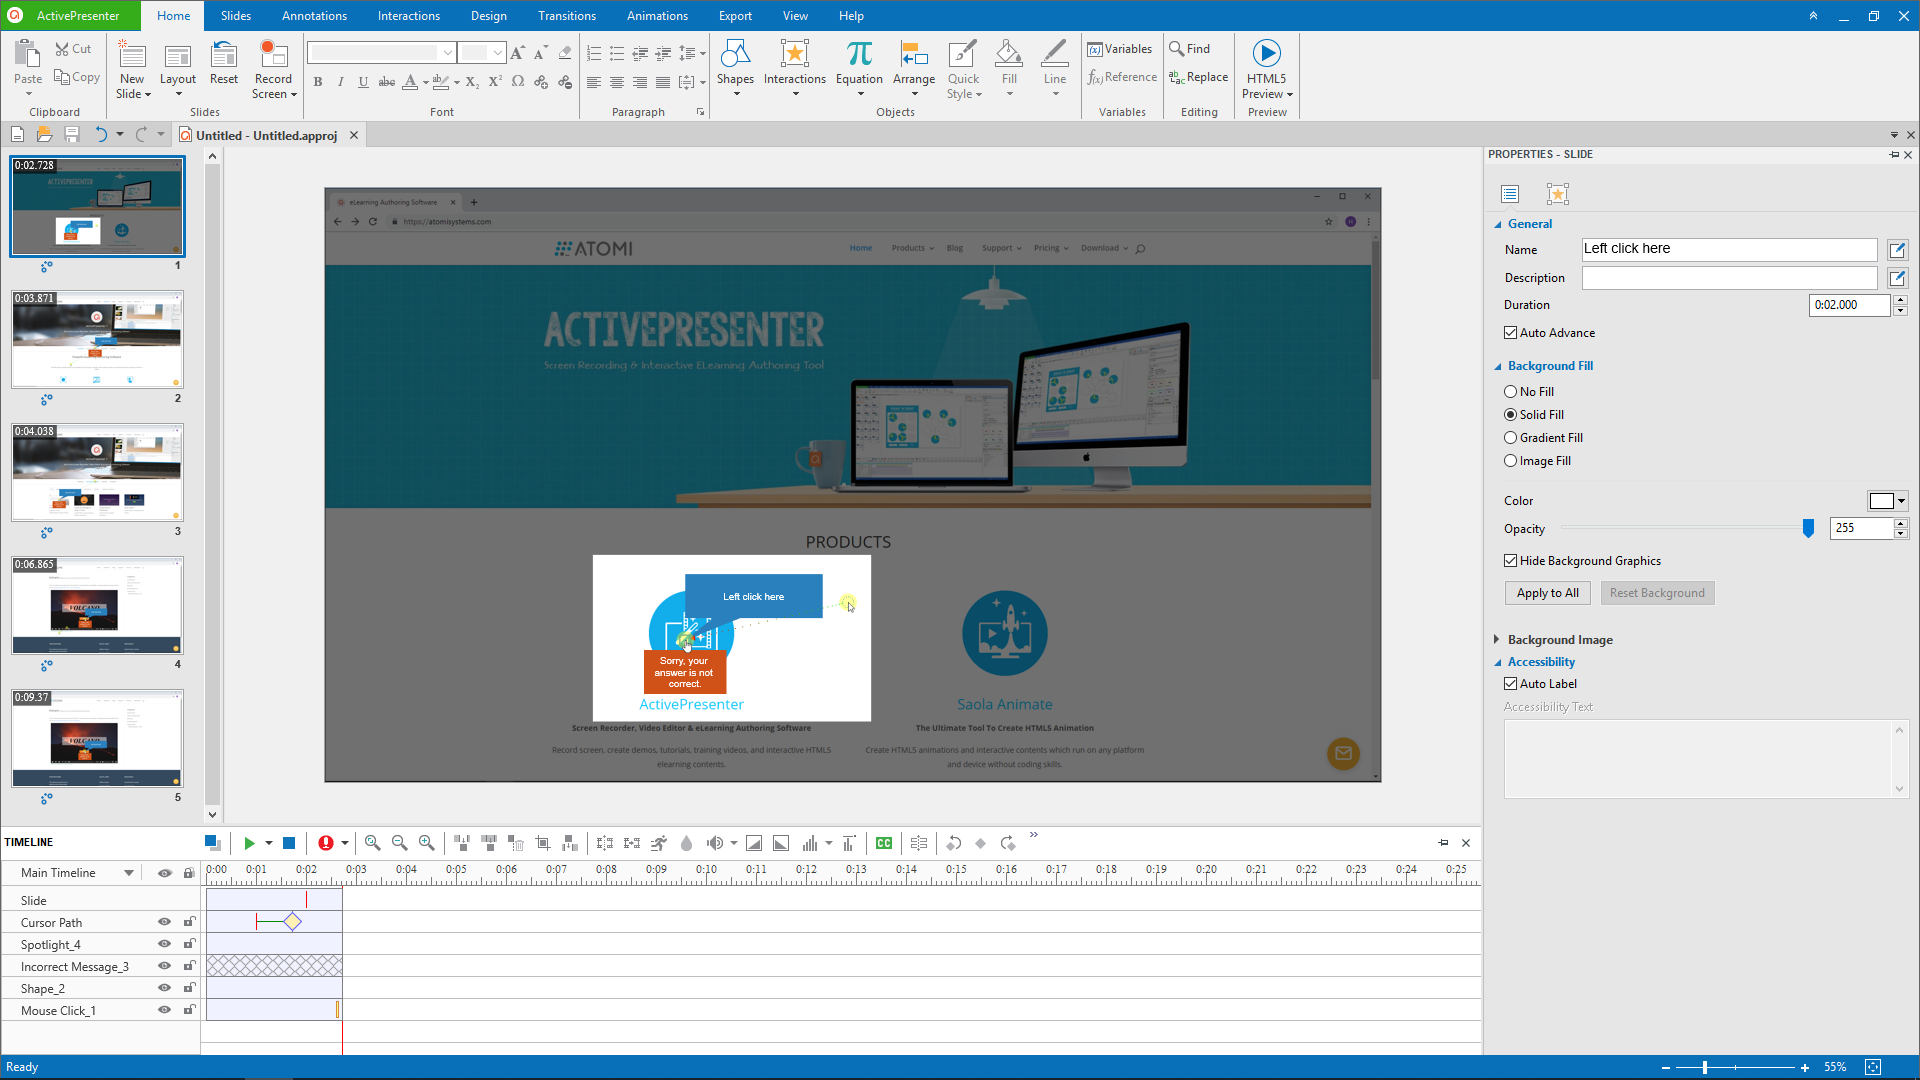 Overview of ActivePresenter 7